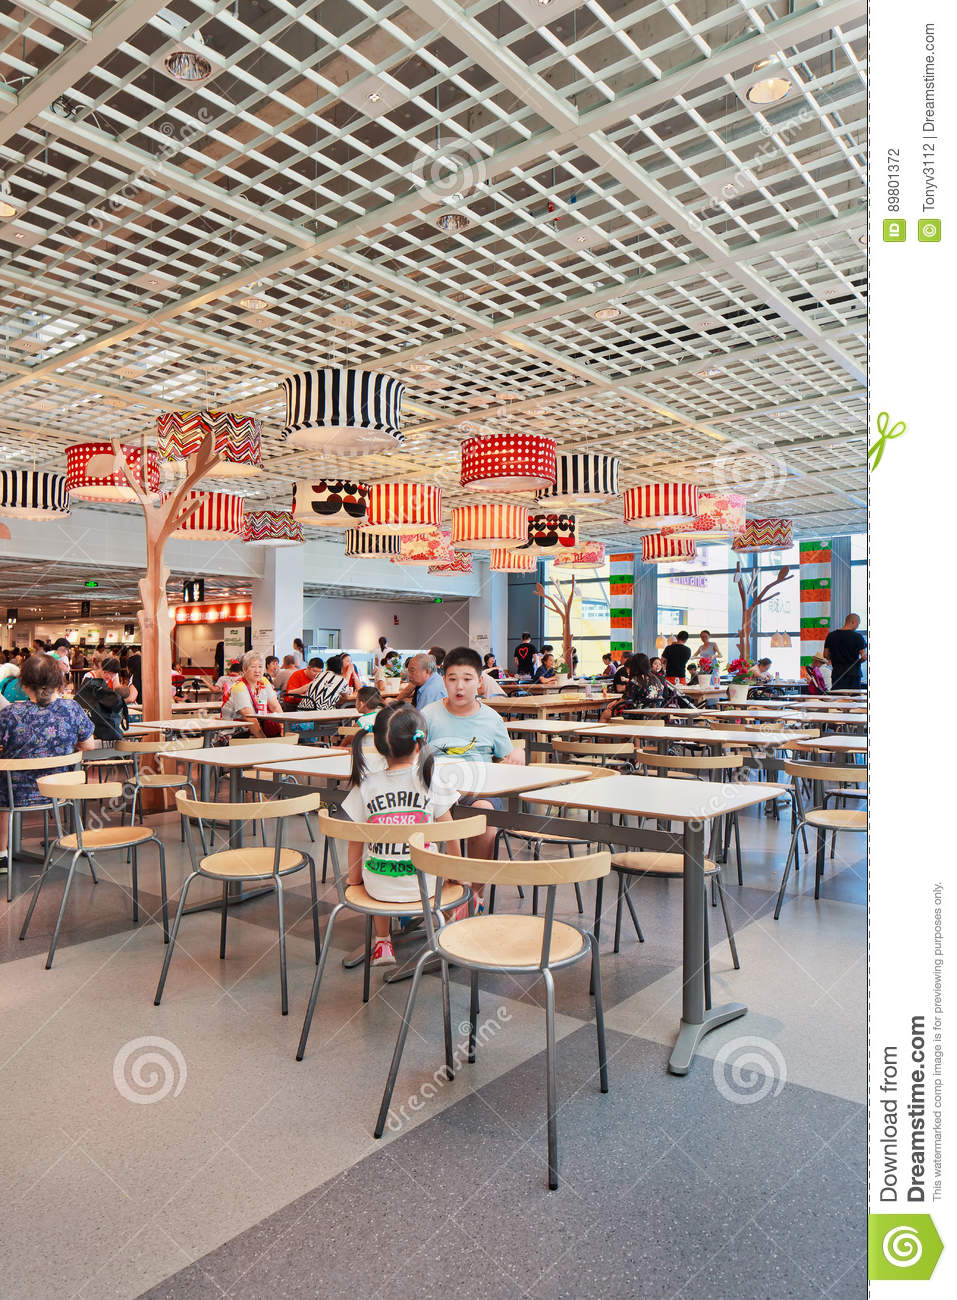 ikea chinas shopping experience essay Studentshare is an excellent platform for you to get inspired, perform a quick research on the trickiest topic, gain experience and understanding of what is an essay and how it should be written we worked hard to make these things more comfortable for you.